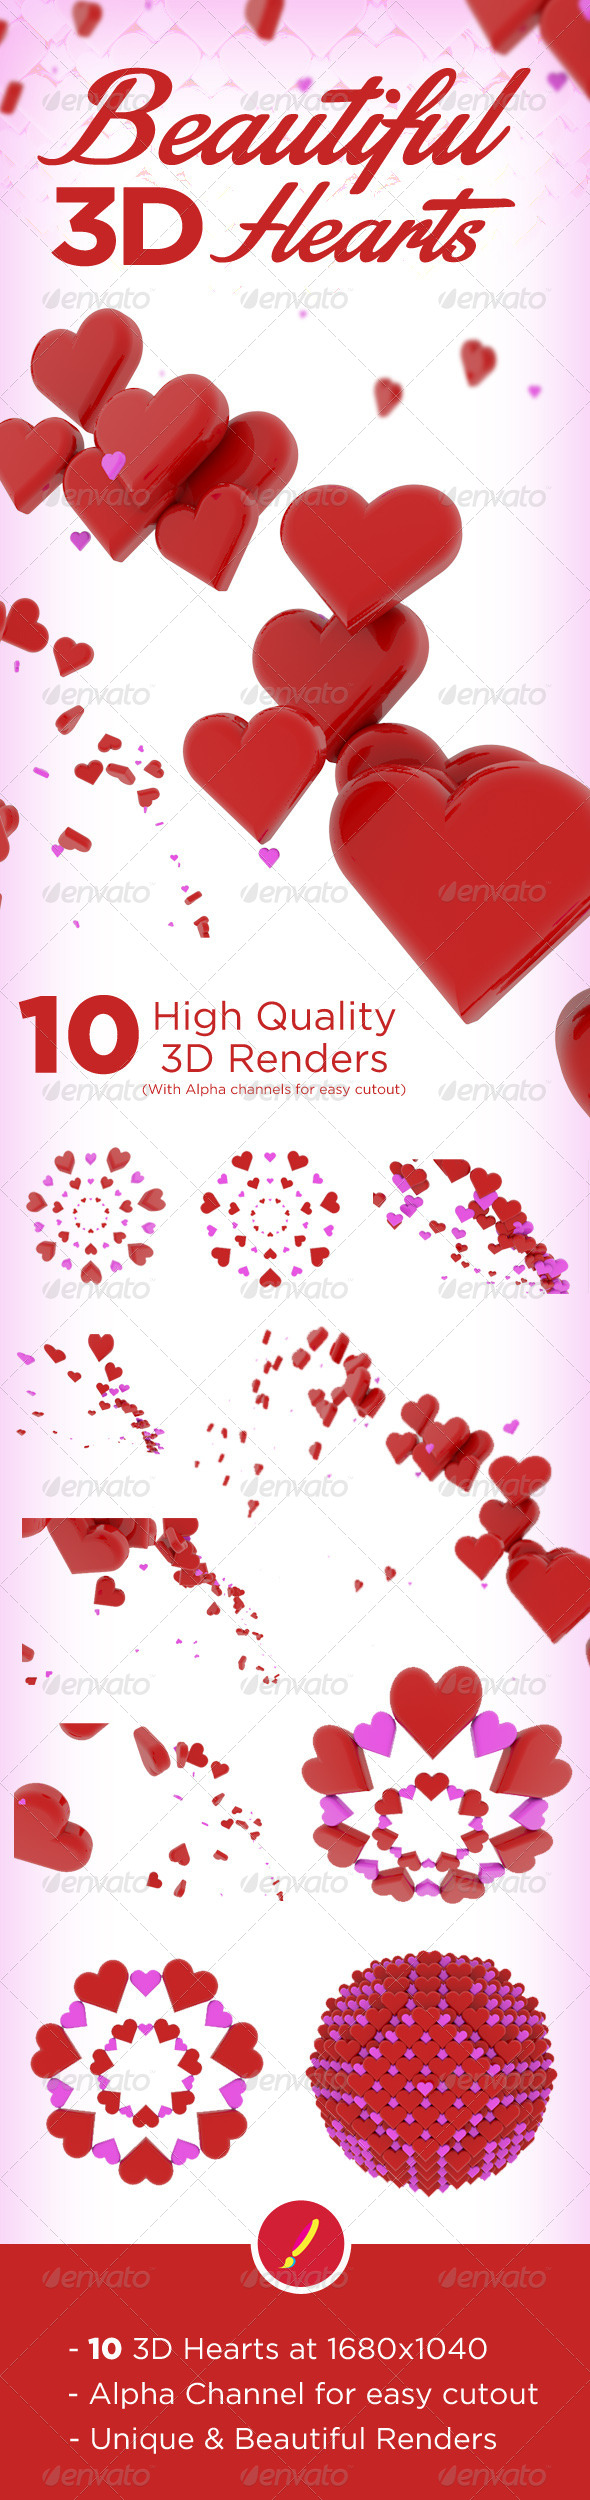 GraphicRiver 10 Beautiful 3D Hearts 6815291